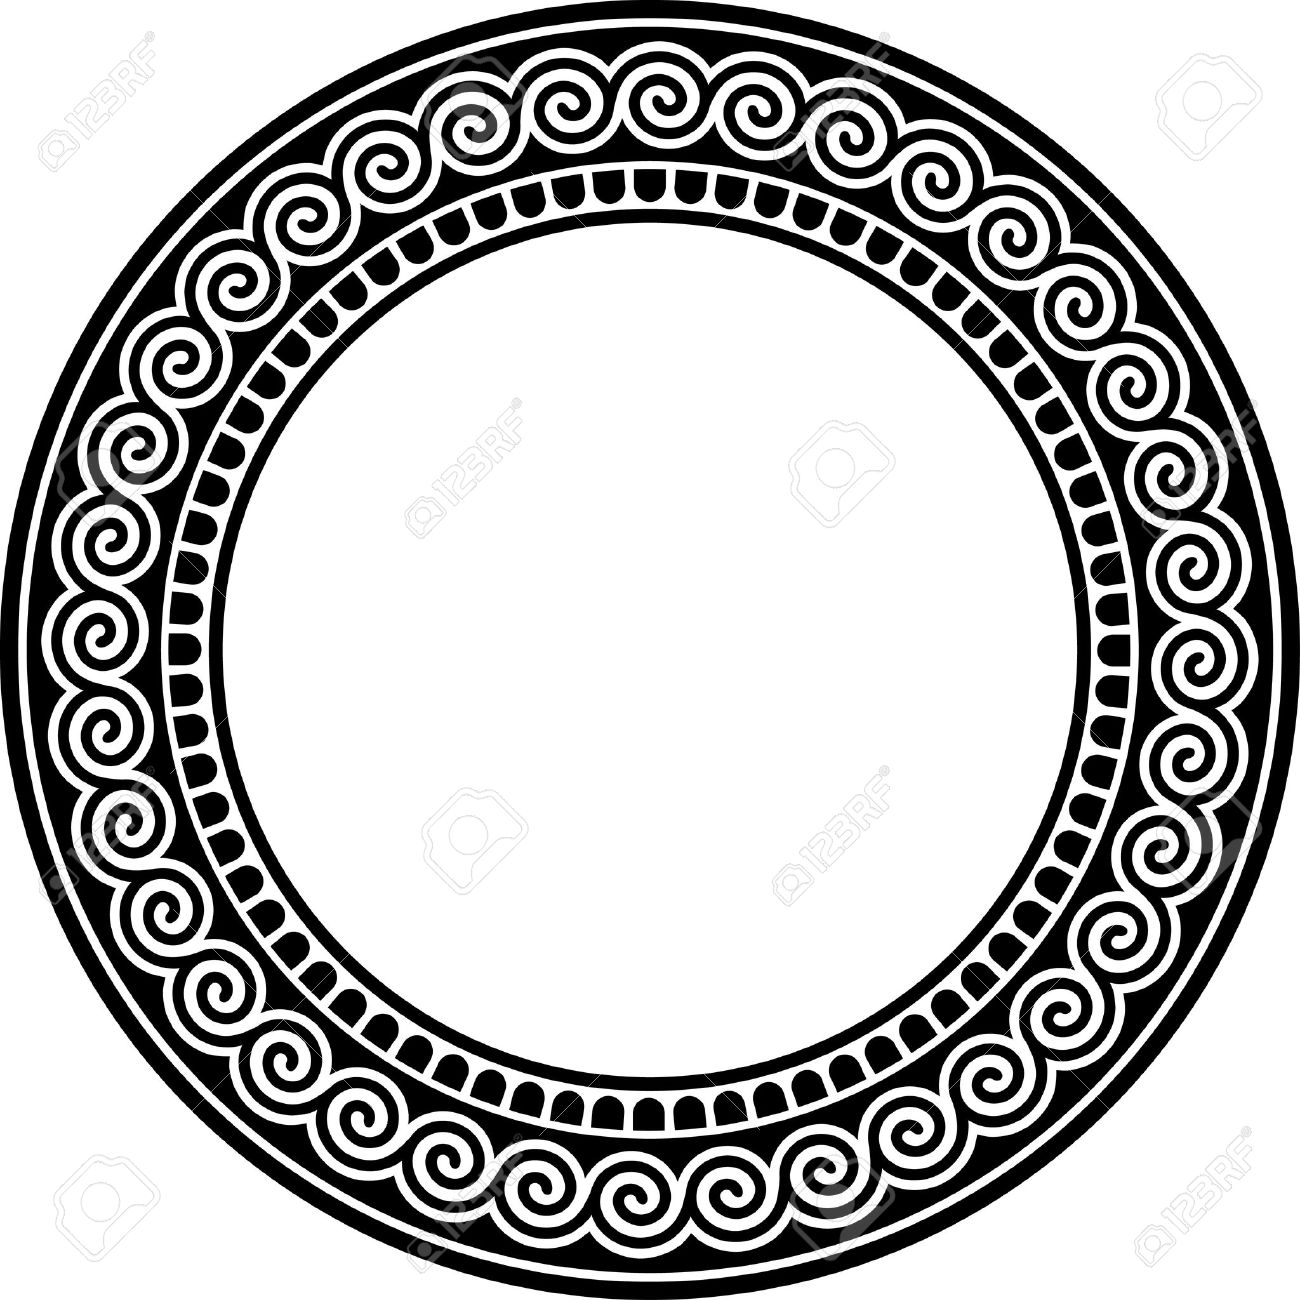 Round Frame With Meander. Royalty Free Cliparts, Vectors, And Stock ...